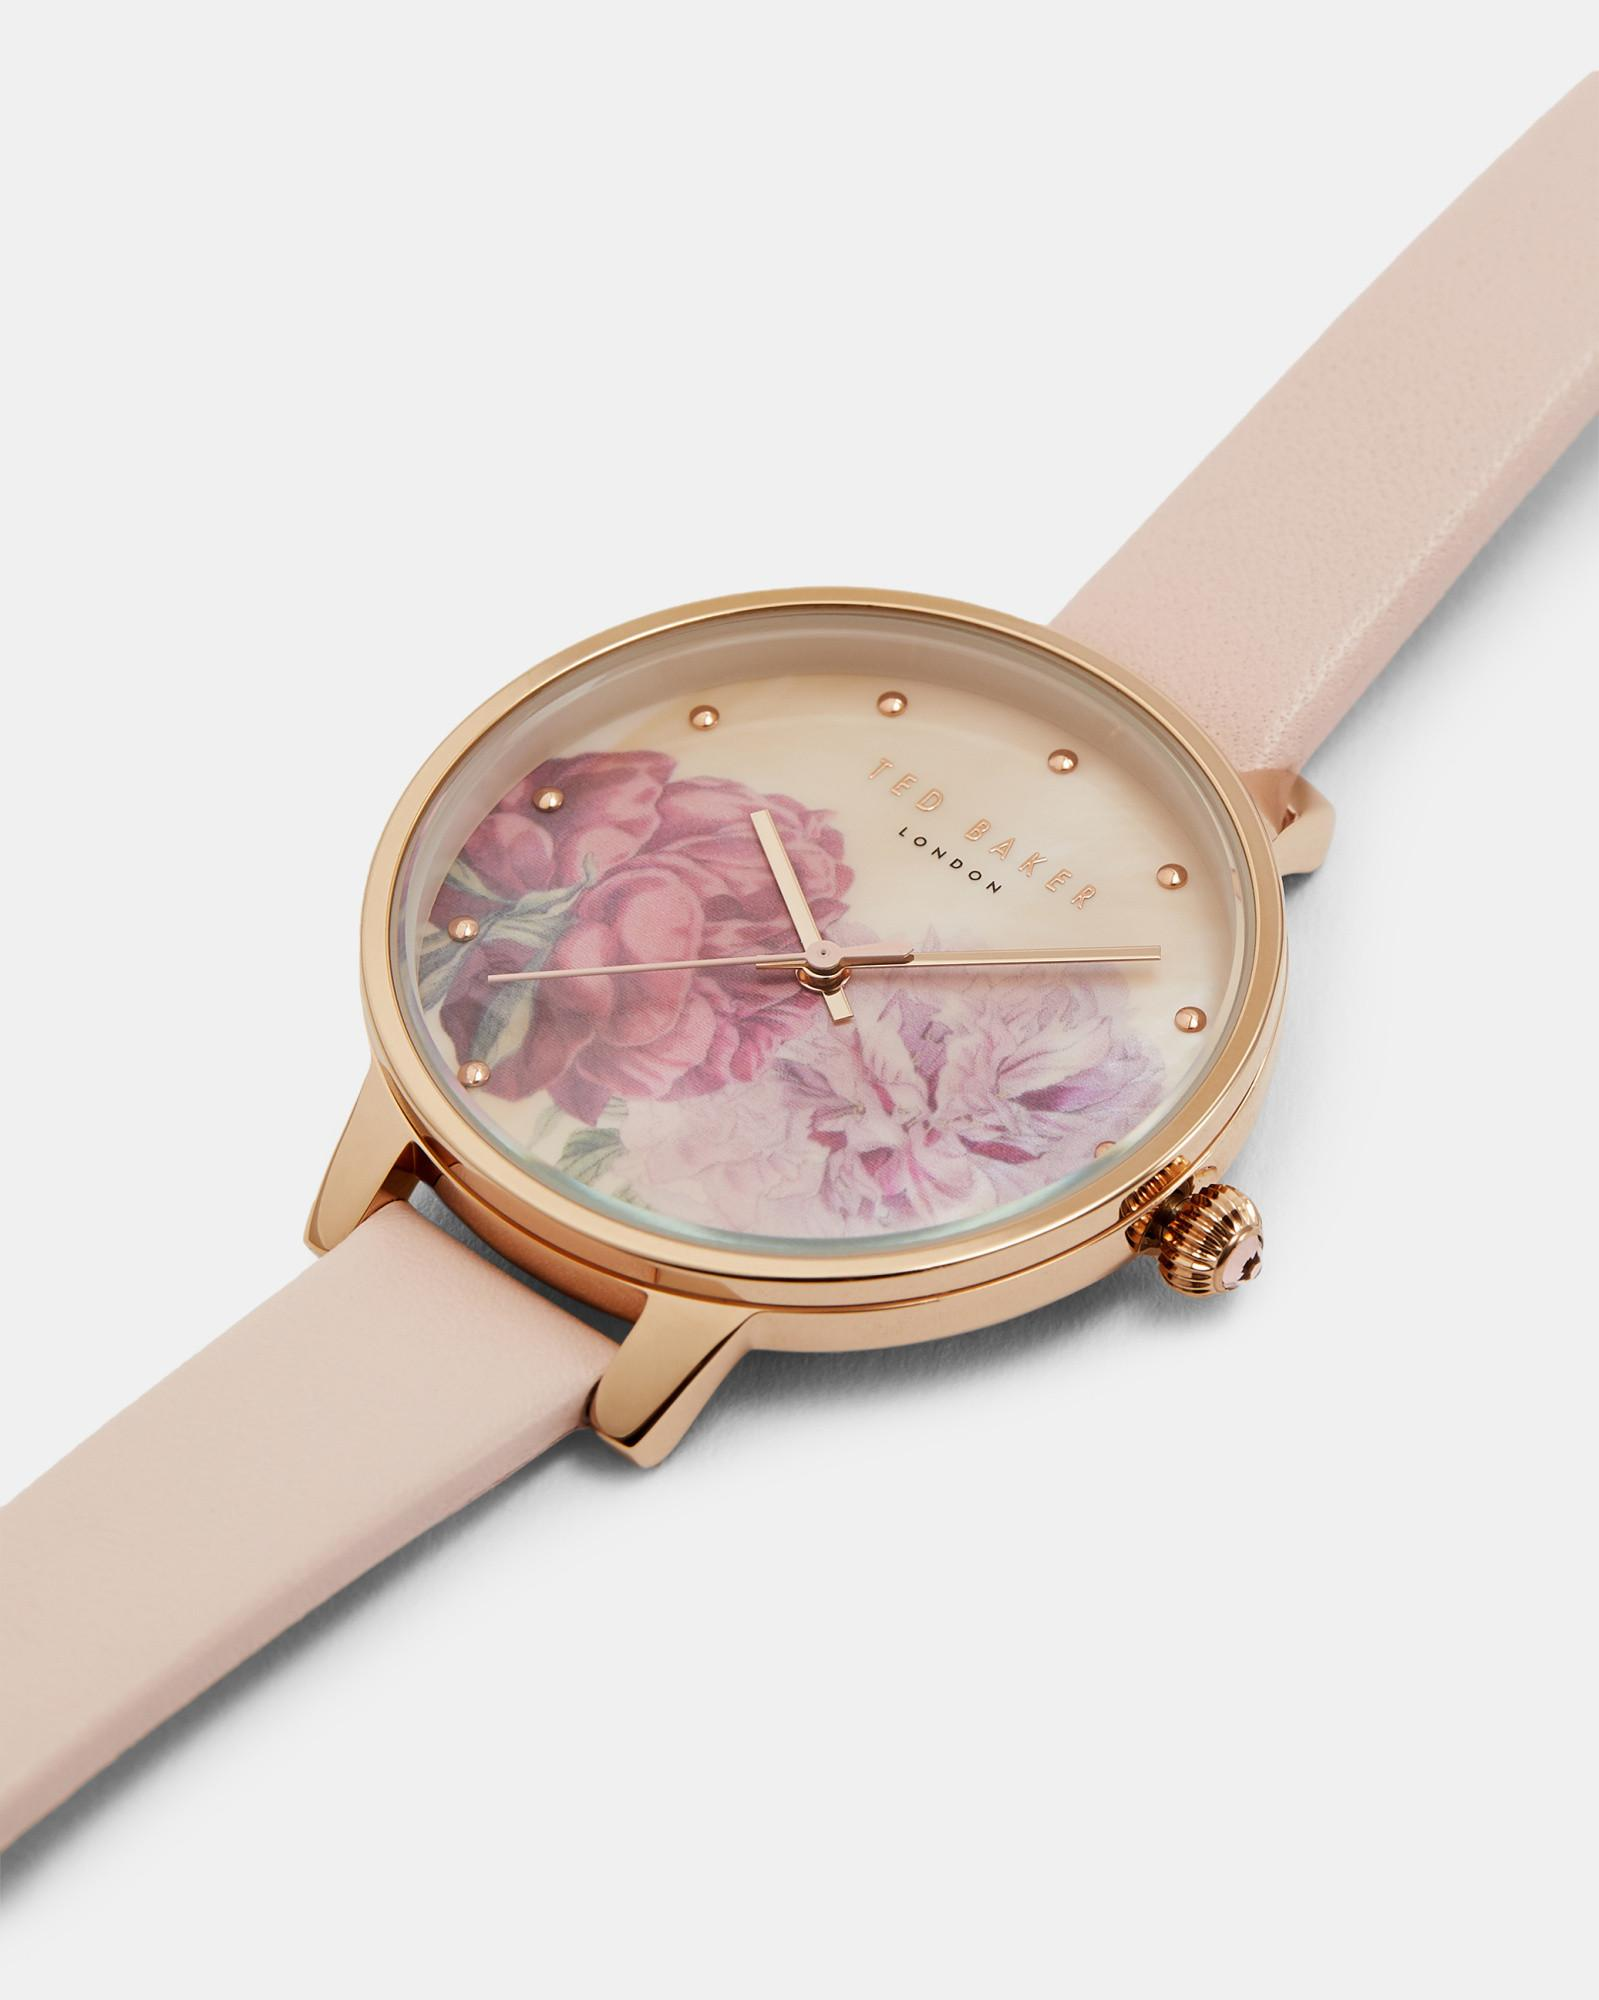 056d40665 Lyst - Ted Baker Printed Watch in Pink